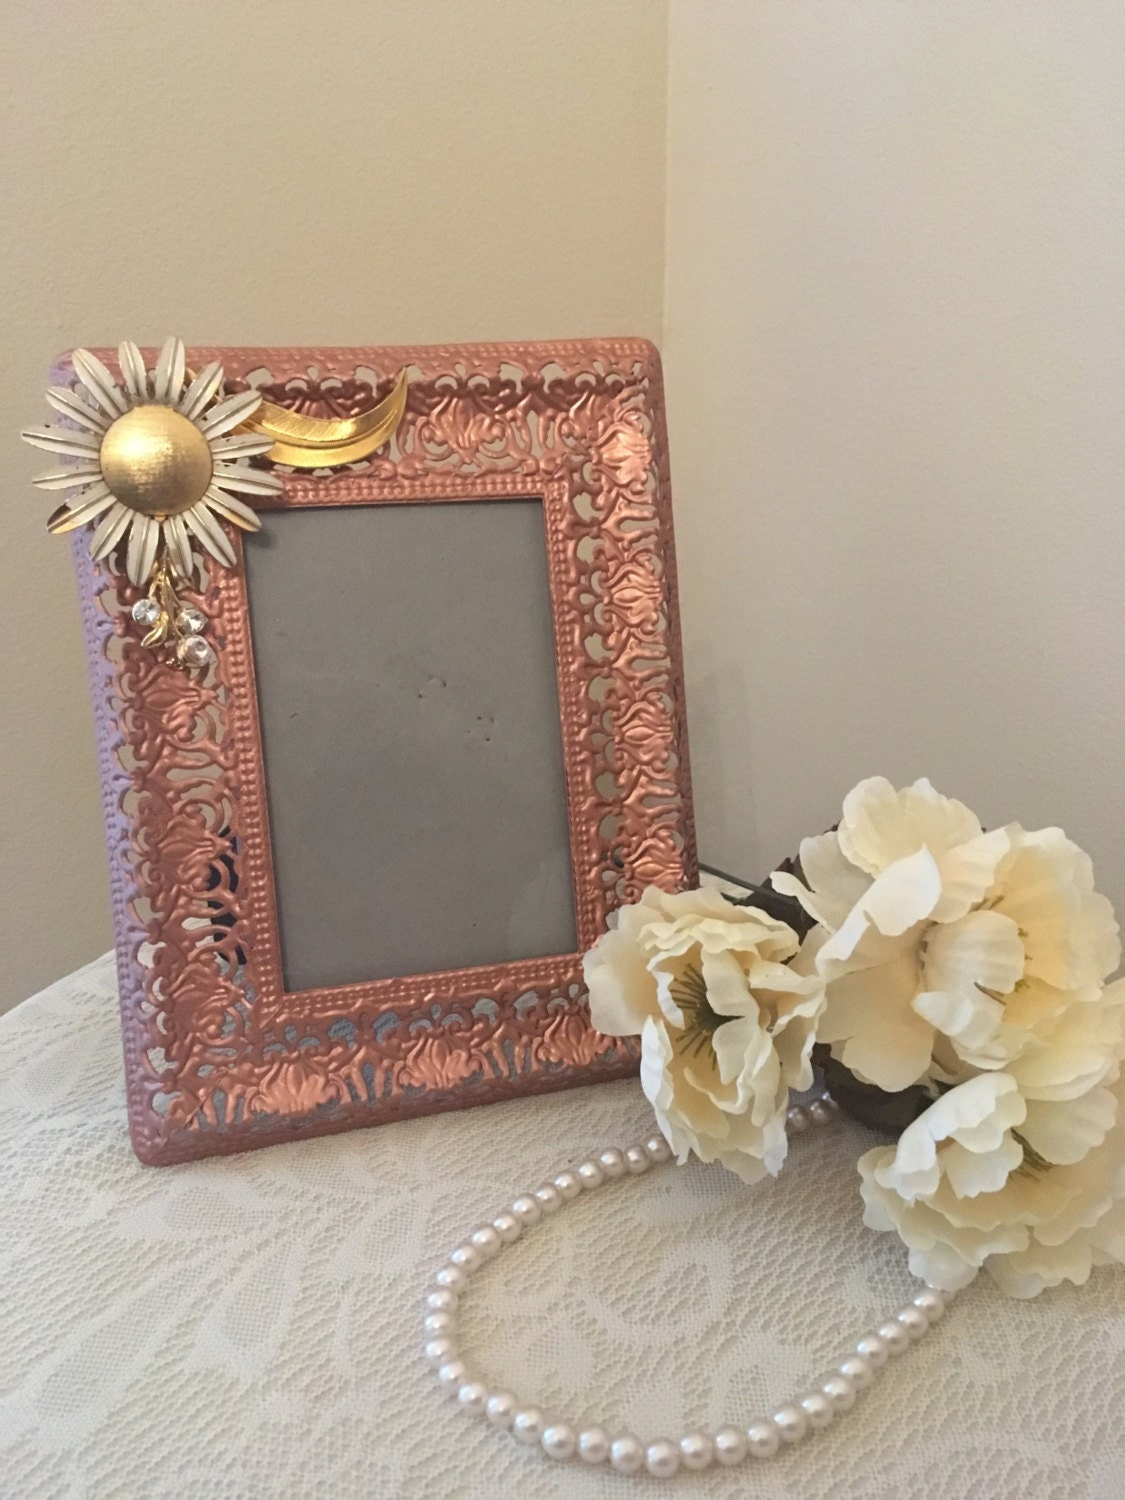 Sale rose gold home decor copper decor picture frame for Gold home decorations